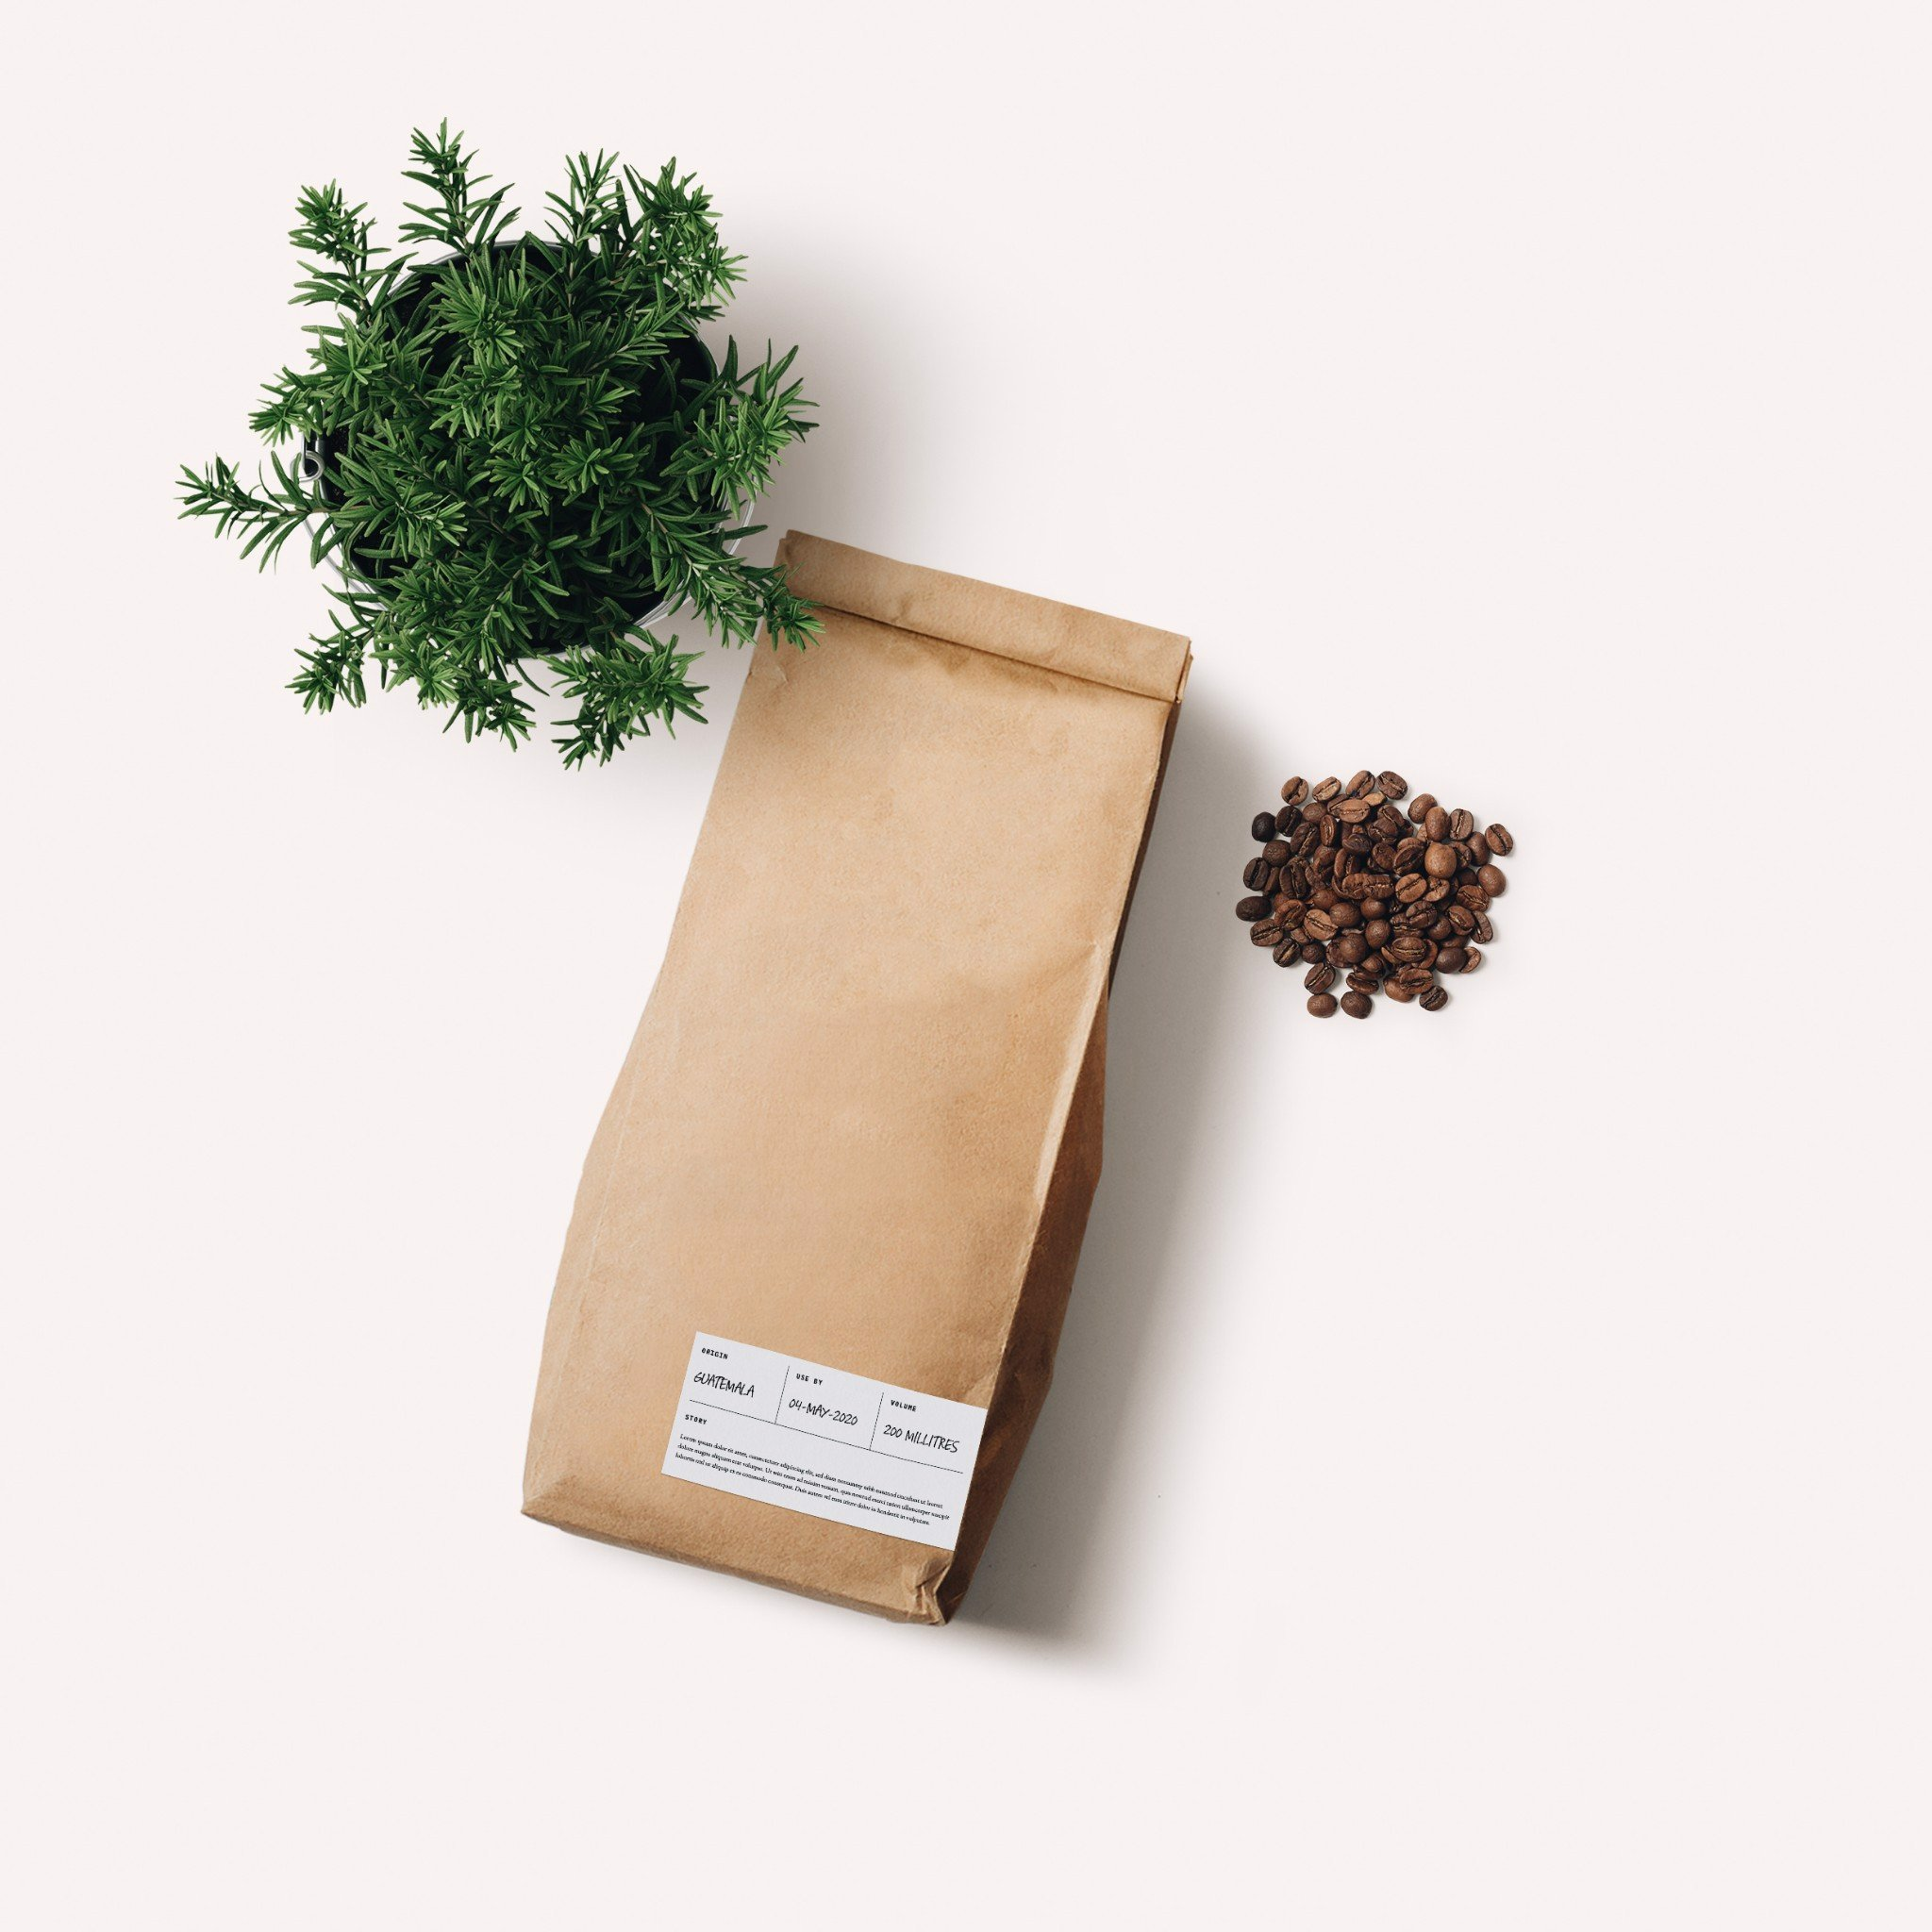 4P's House-roasted Coffee Bean (250g)